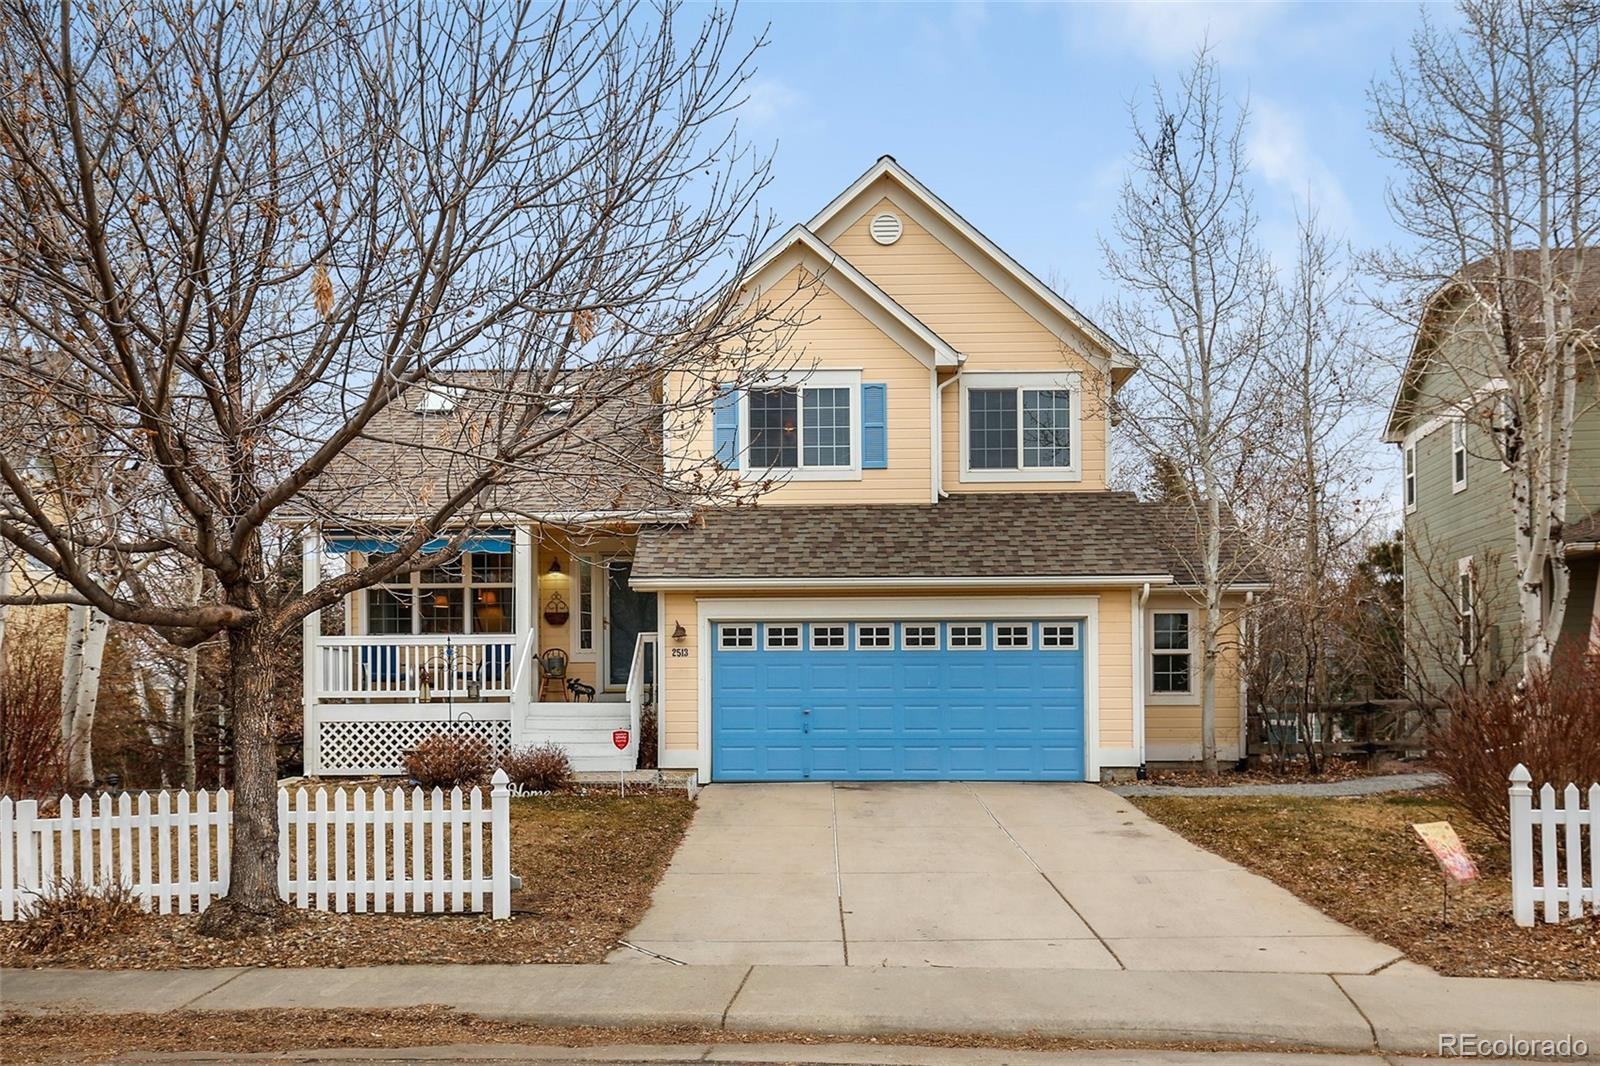 MLS# 5985201 - 1 - 2513 Concord Circle, Lafayette, CO 80026